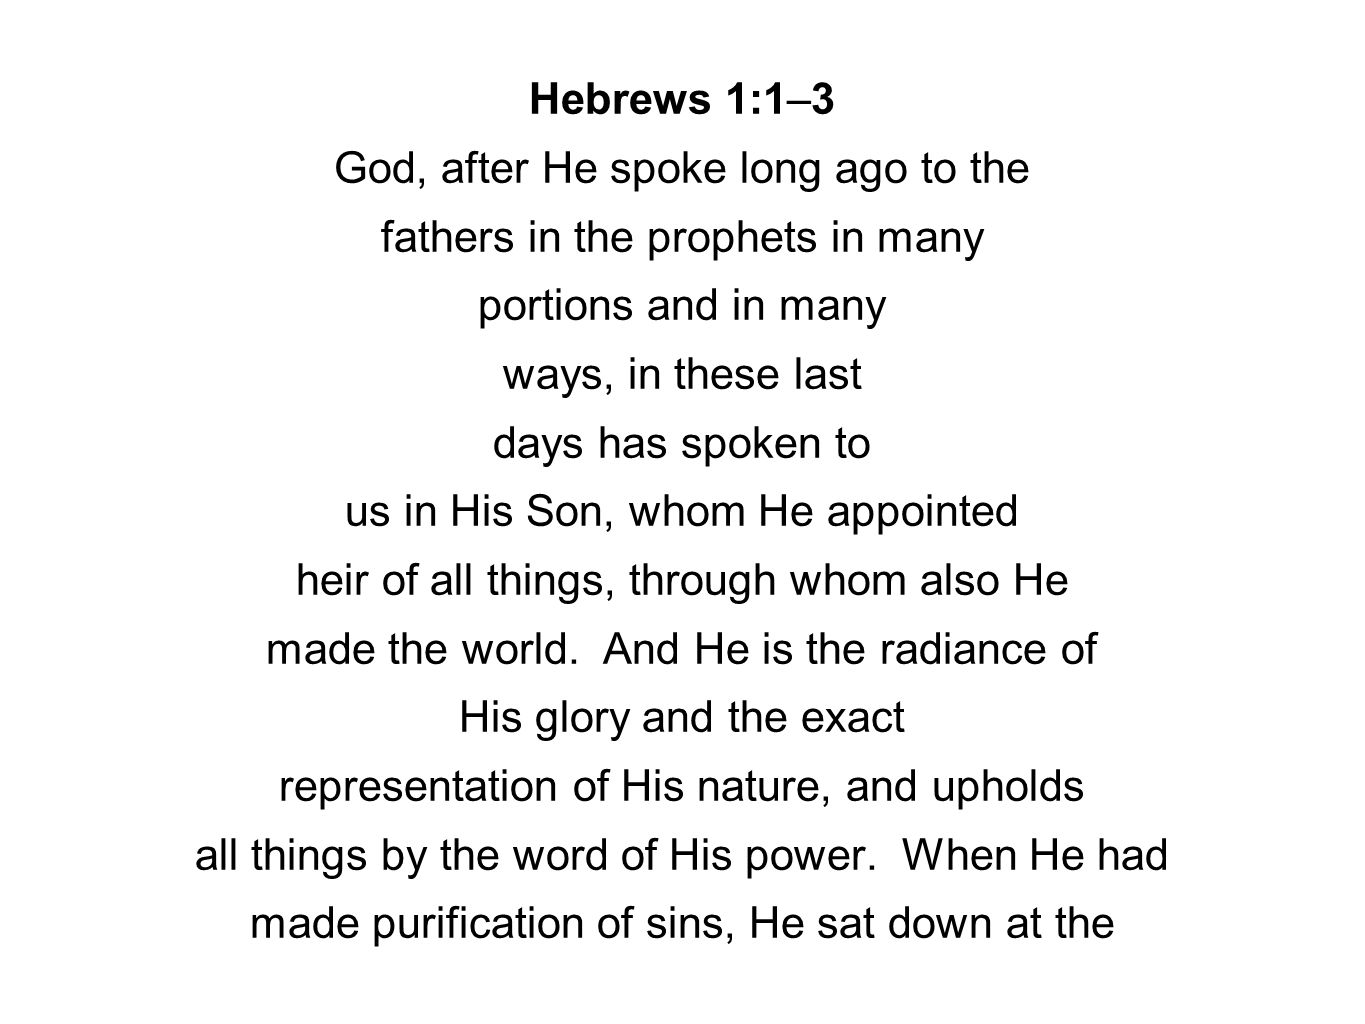 Hebrews 1:1–3 God, after He spoke long ago to the fathers in the prophets in many portions and in many ways, in these last days has spoken to us in Hi